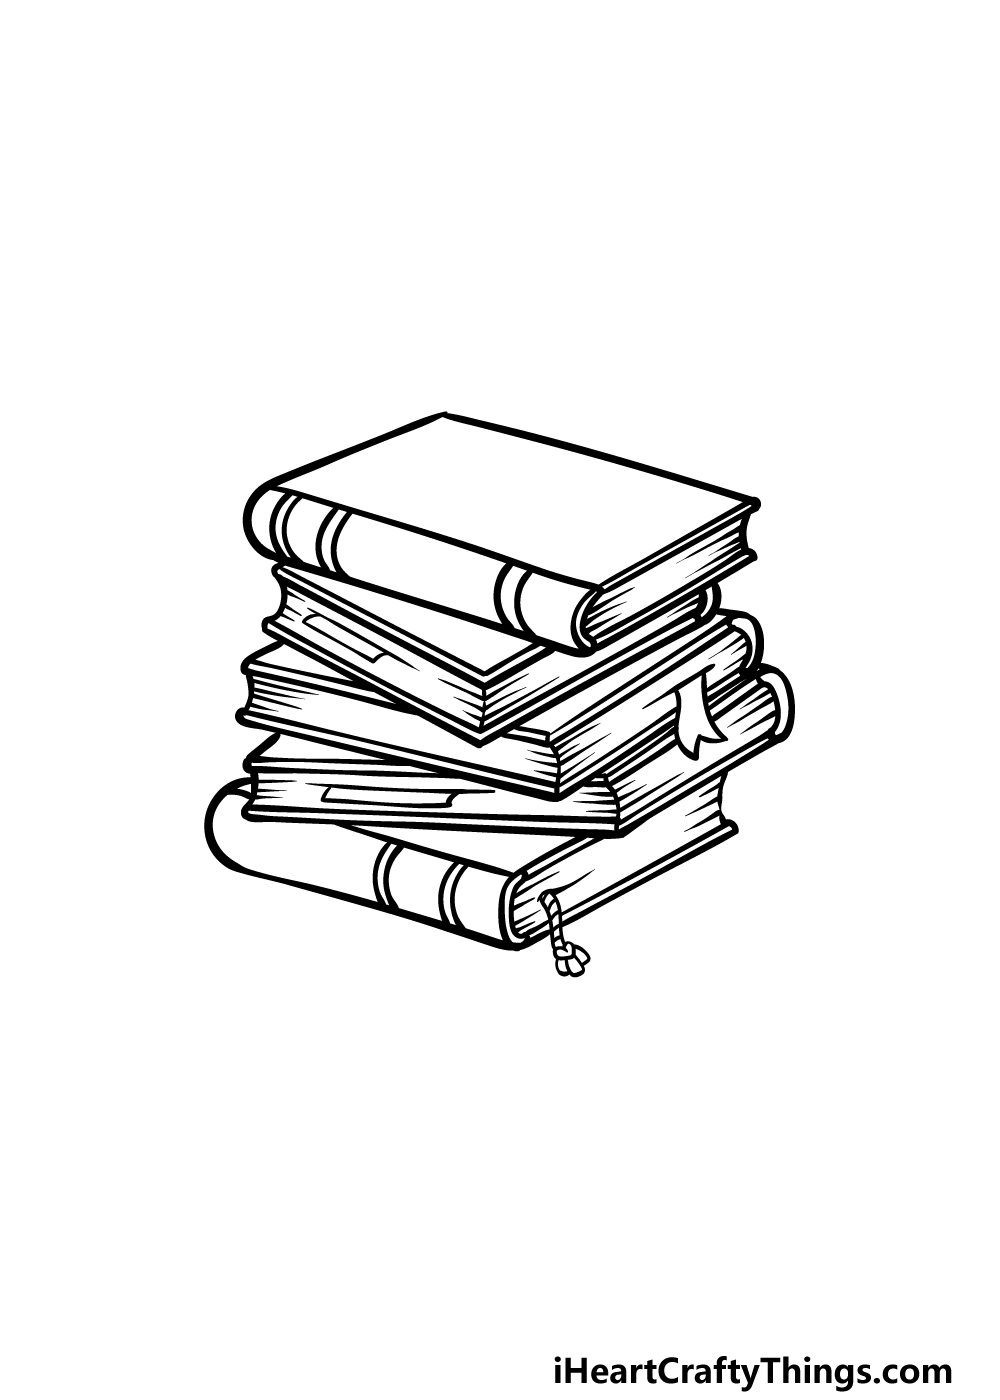 drawing a stack of books step 4